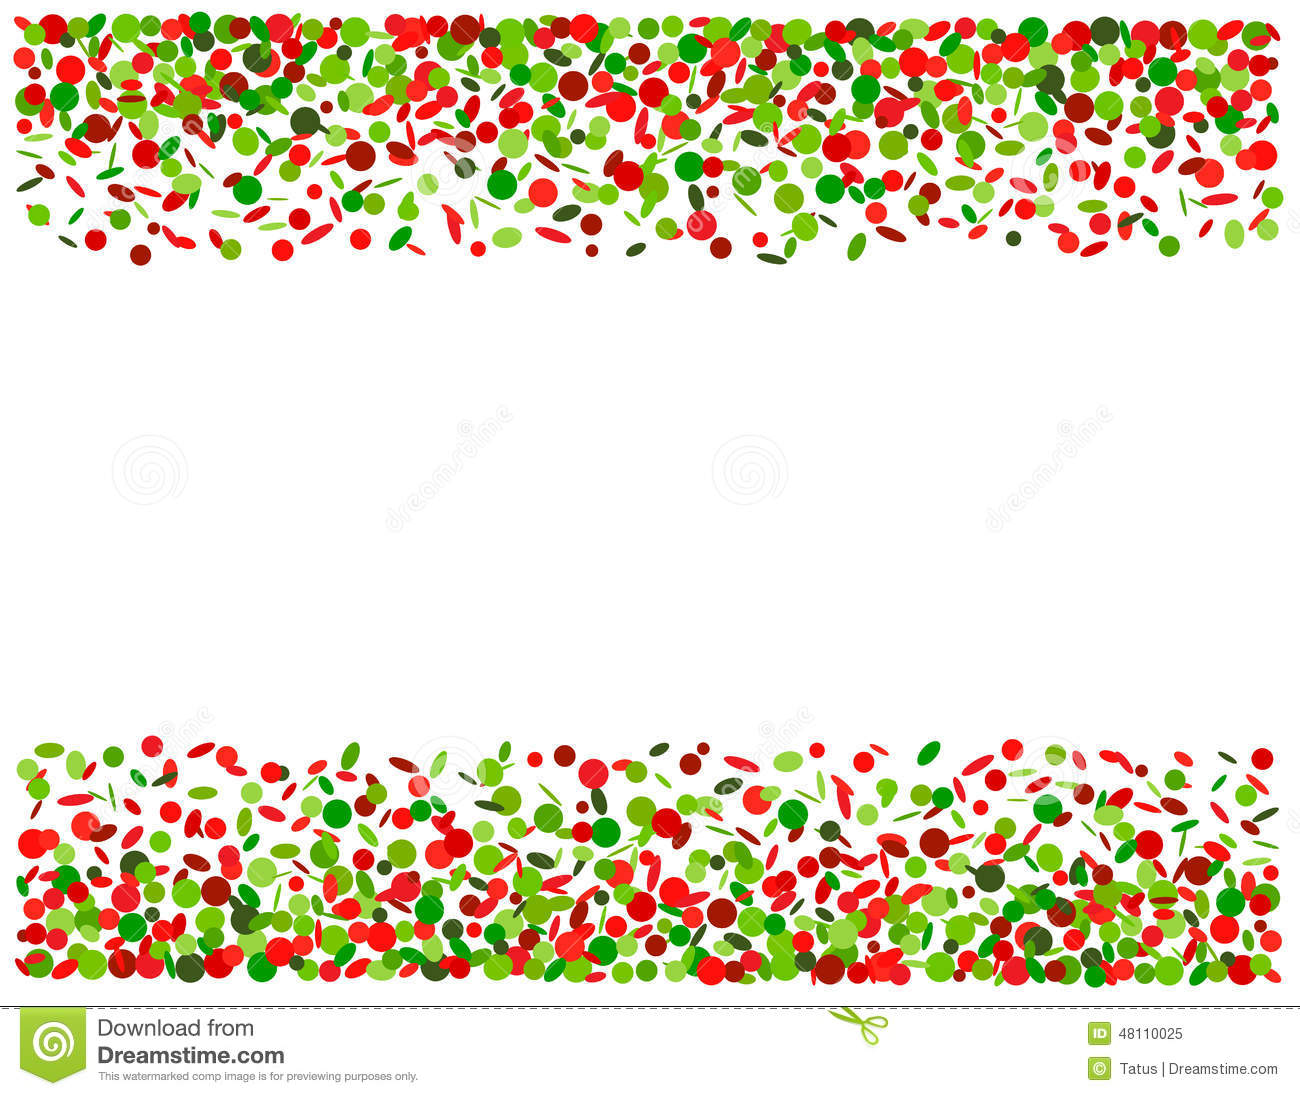 Red and green confetti clipart vector.